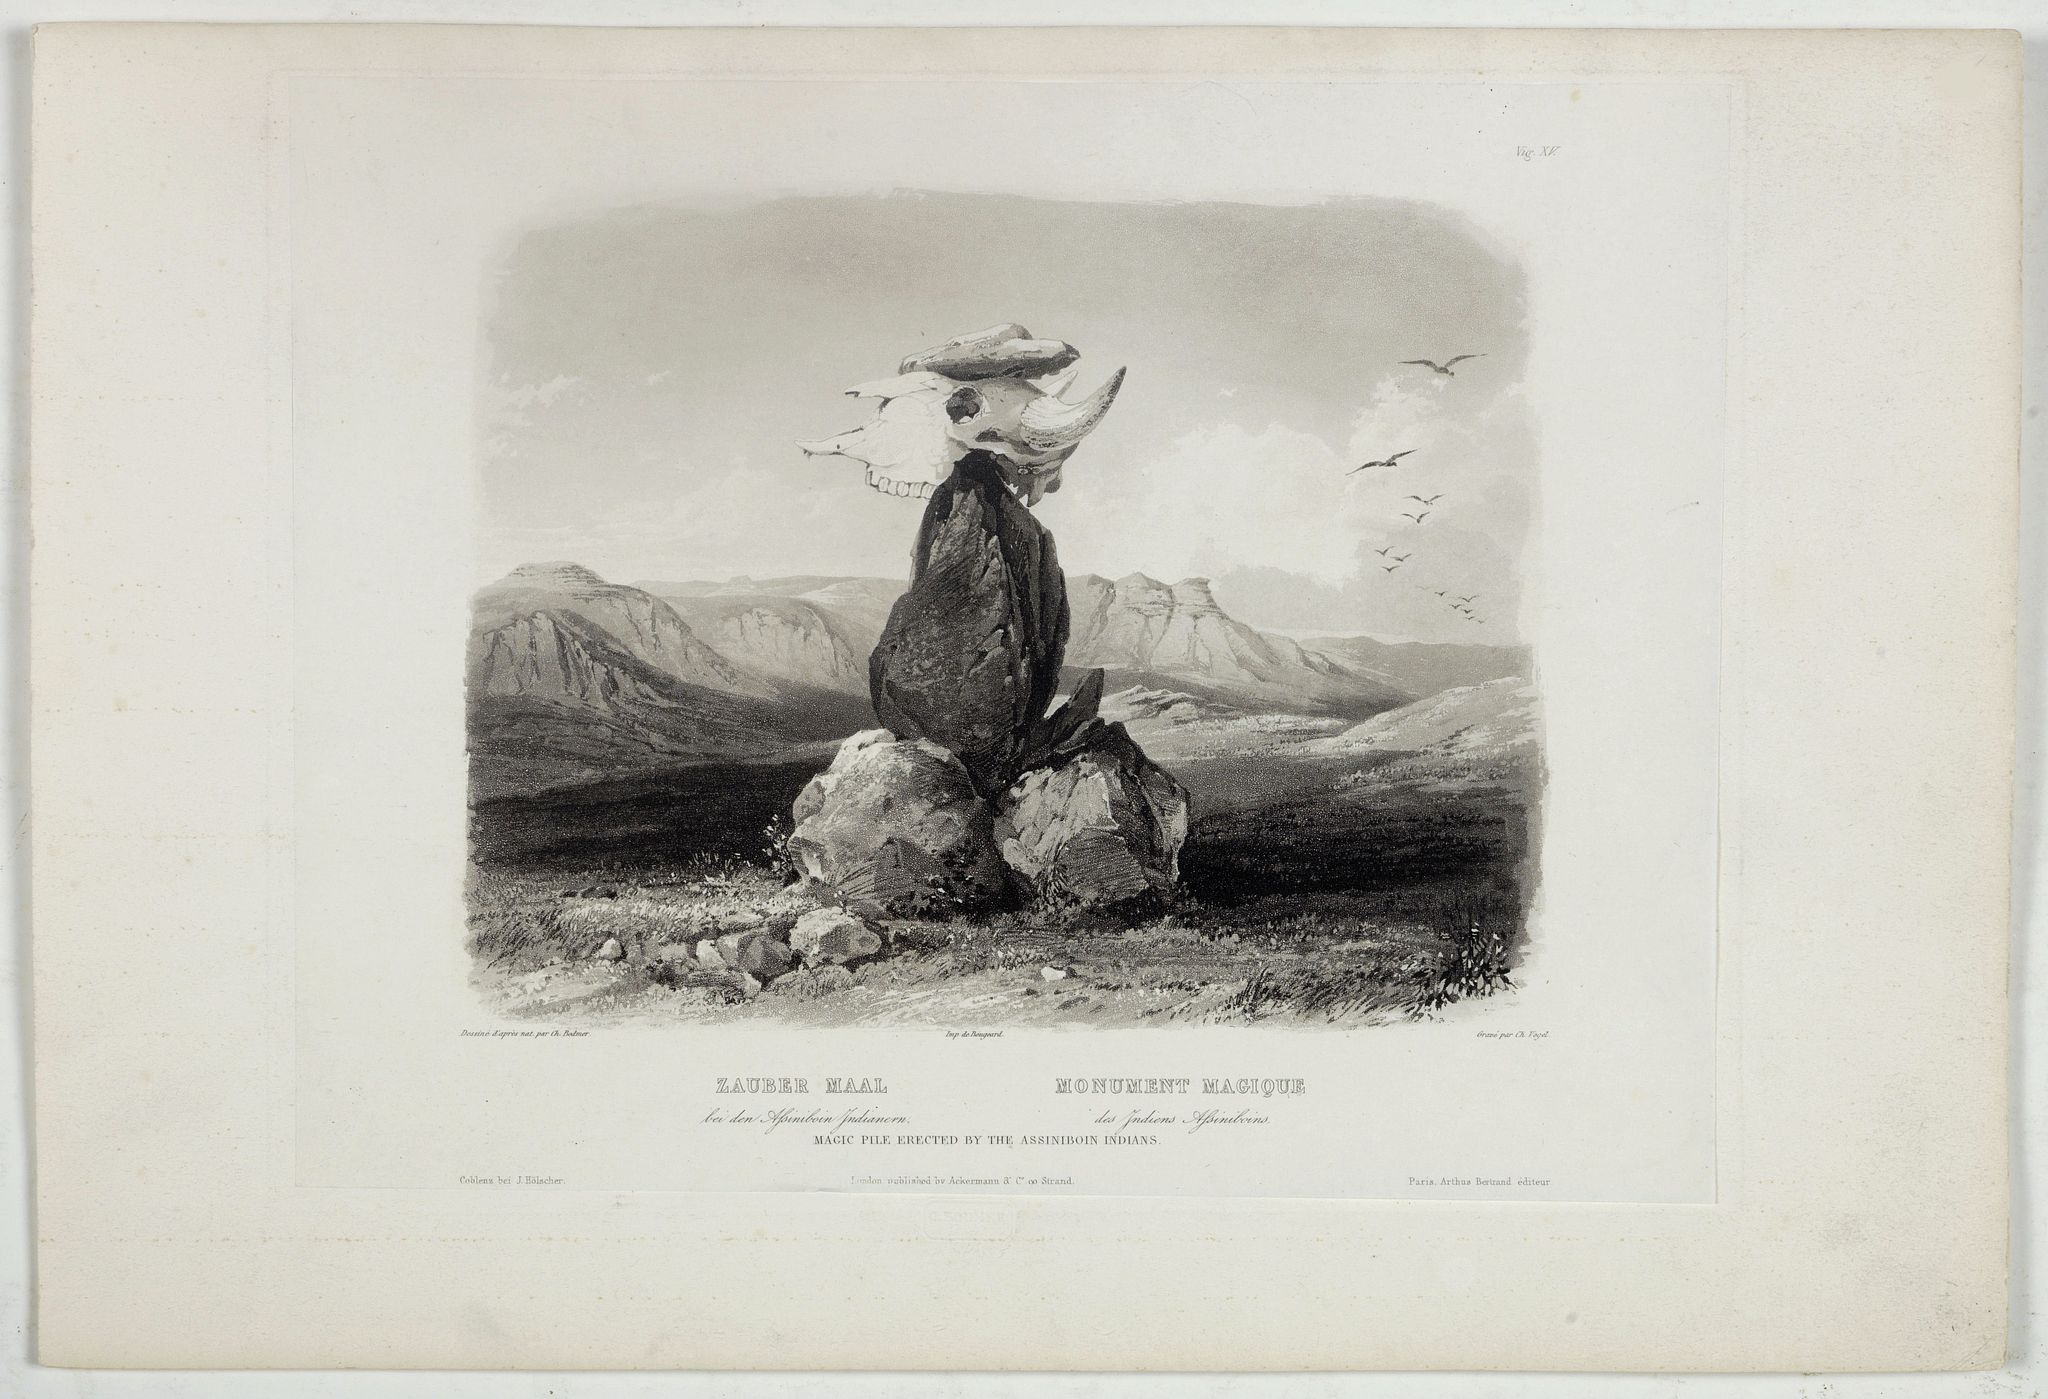 BODMER, Karl. -  Magic Pile erected by the Assiniboin Indians.